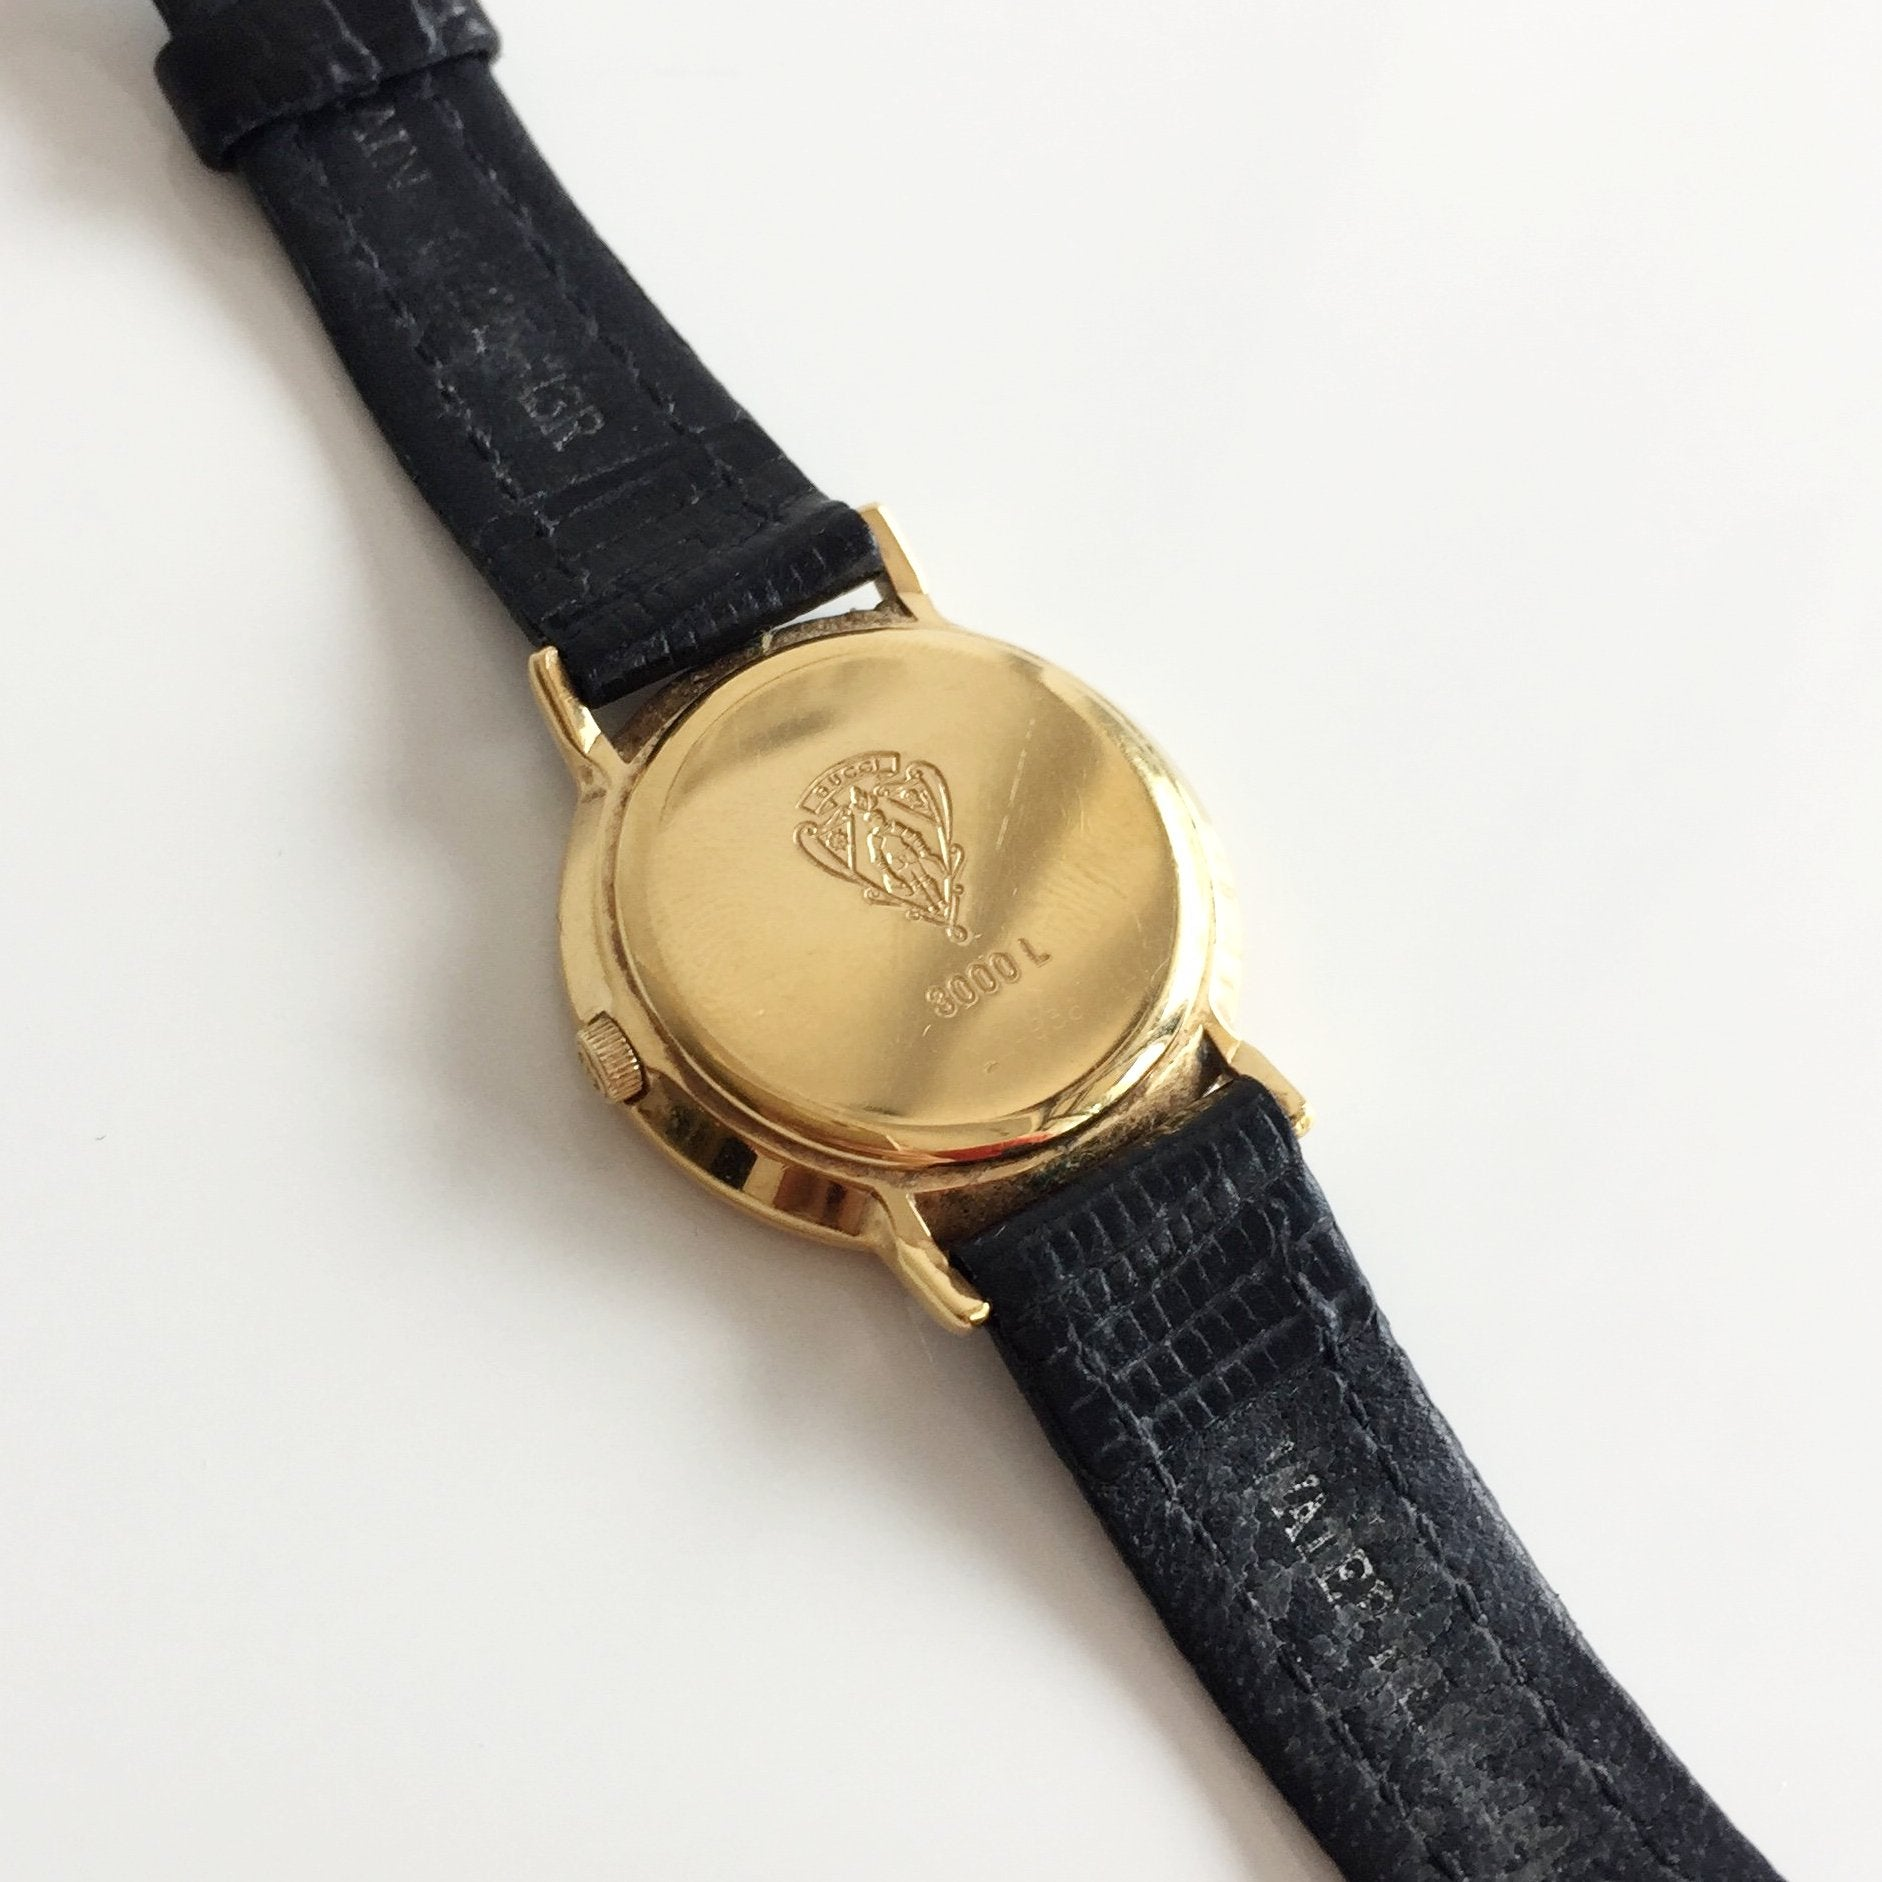 Authentic GUCCI Vintage Watch